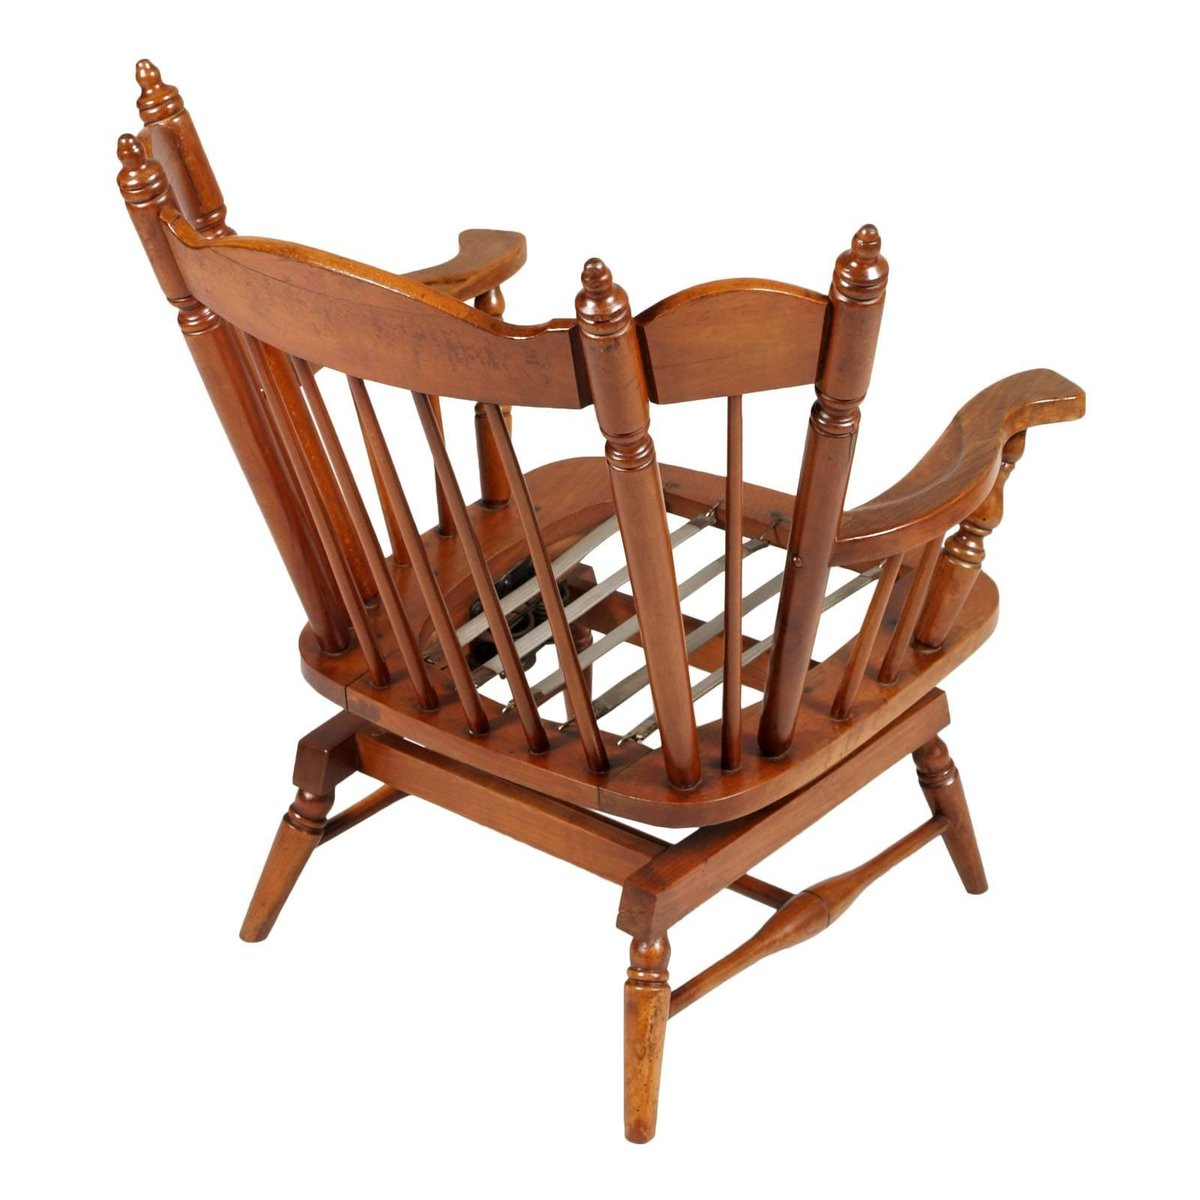 Cheap Rocking Chairs Chiavari Chestnut Rocking Chairs With Springs 1930s Set Of 2